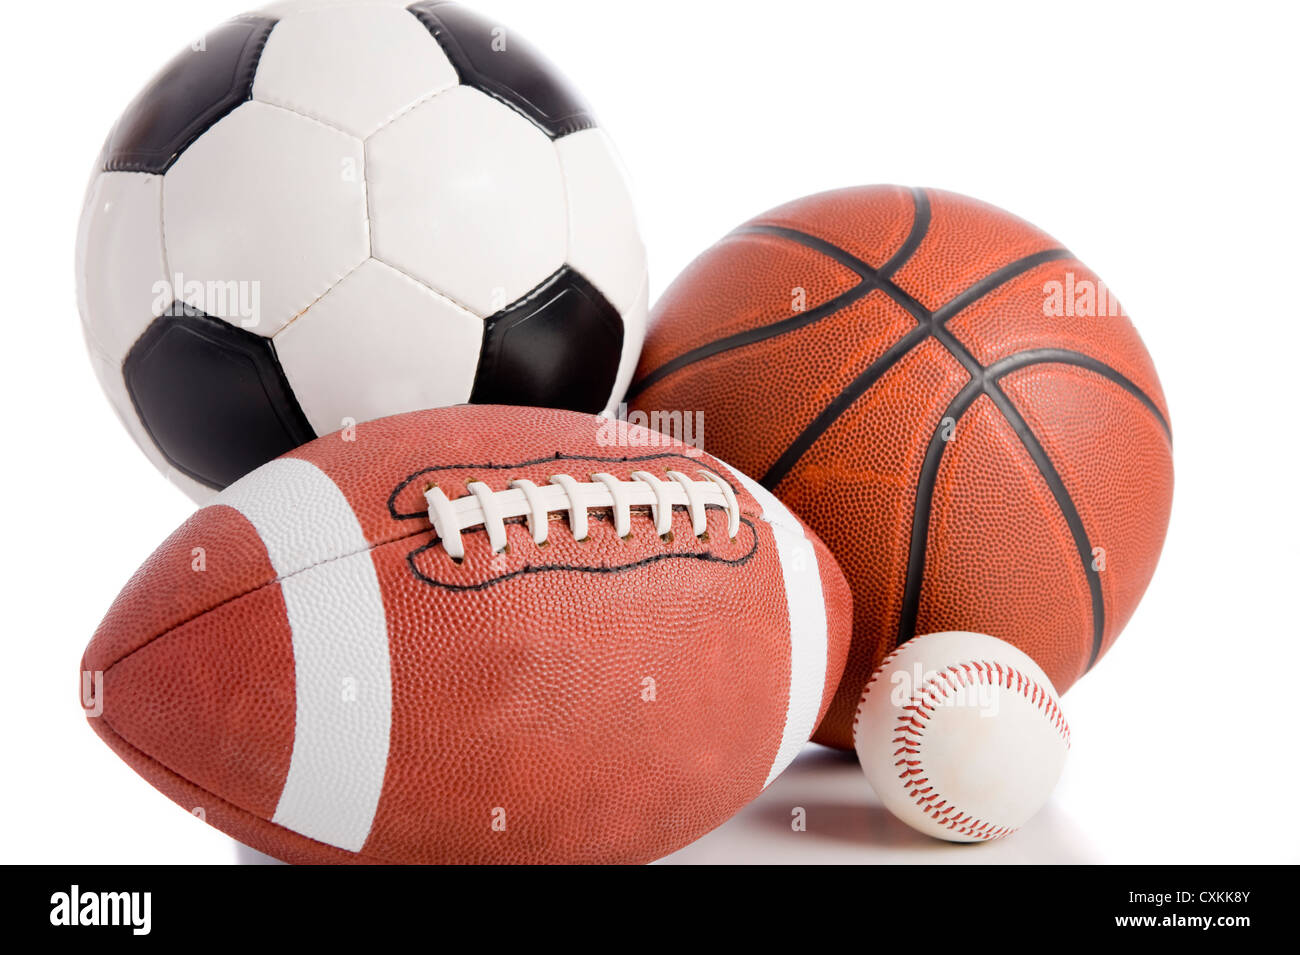 A Group Of Sports Balls On White Background Including Baseball An American Football Basketball And Soccer Ball